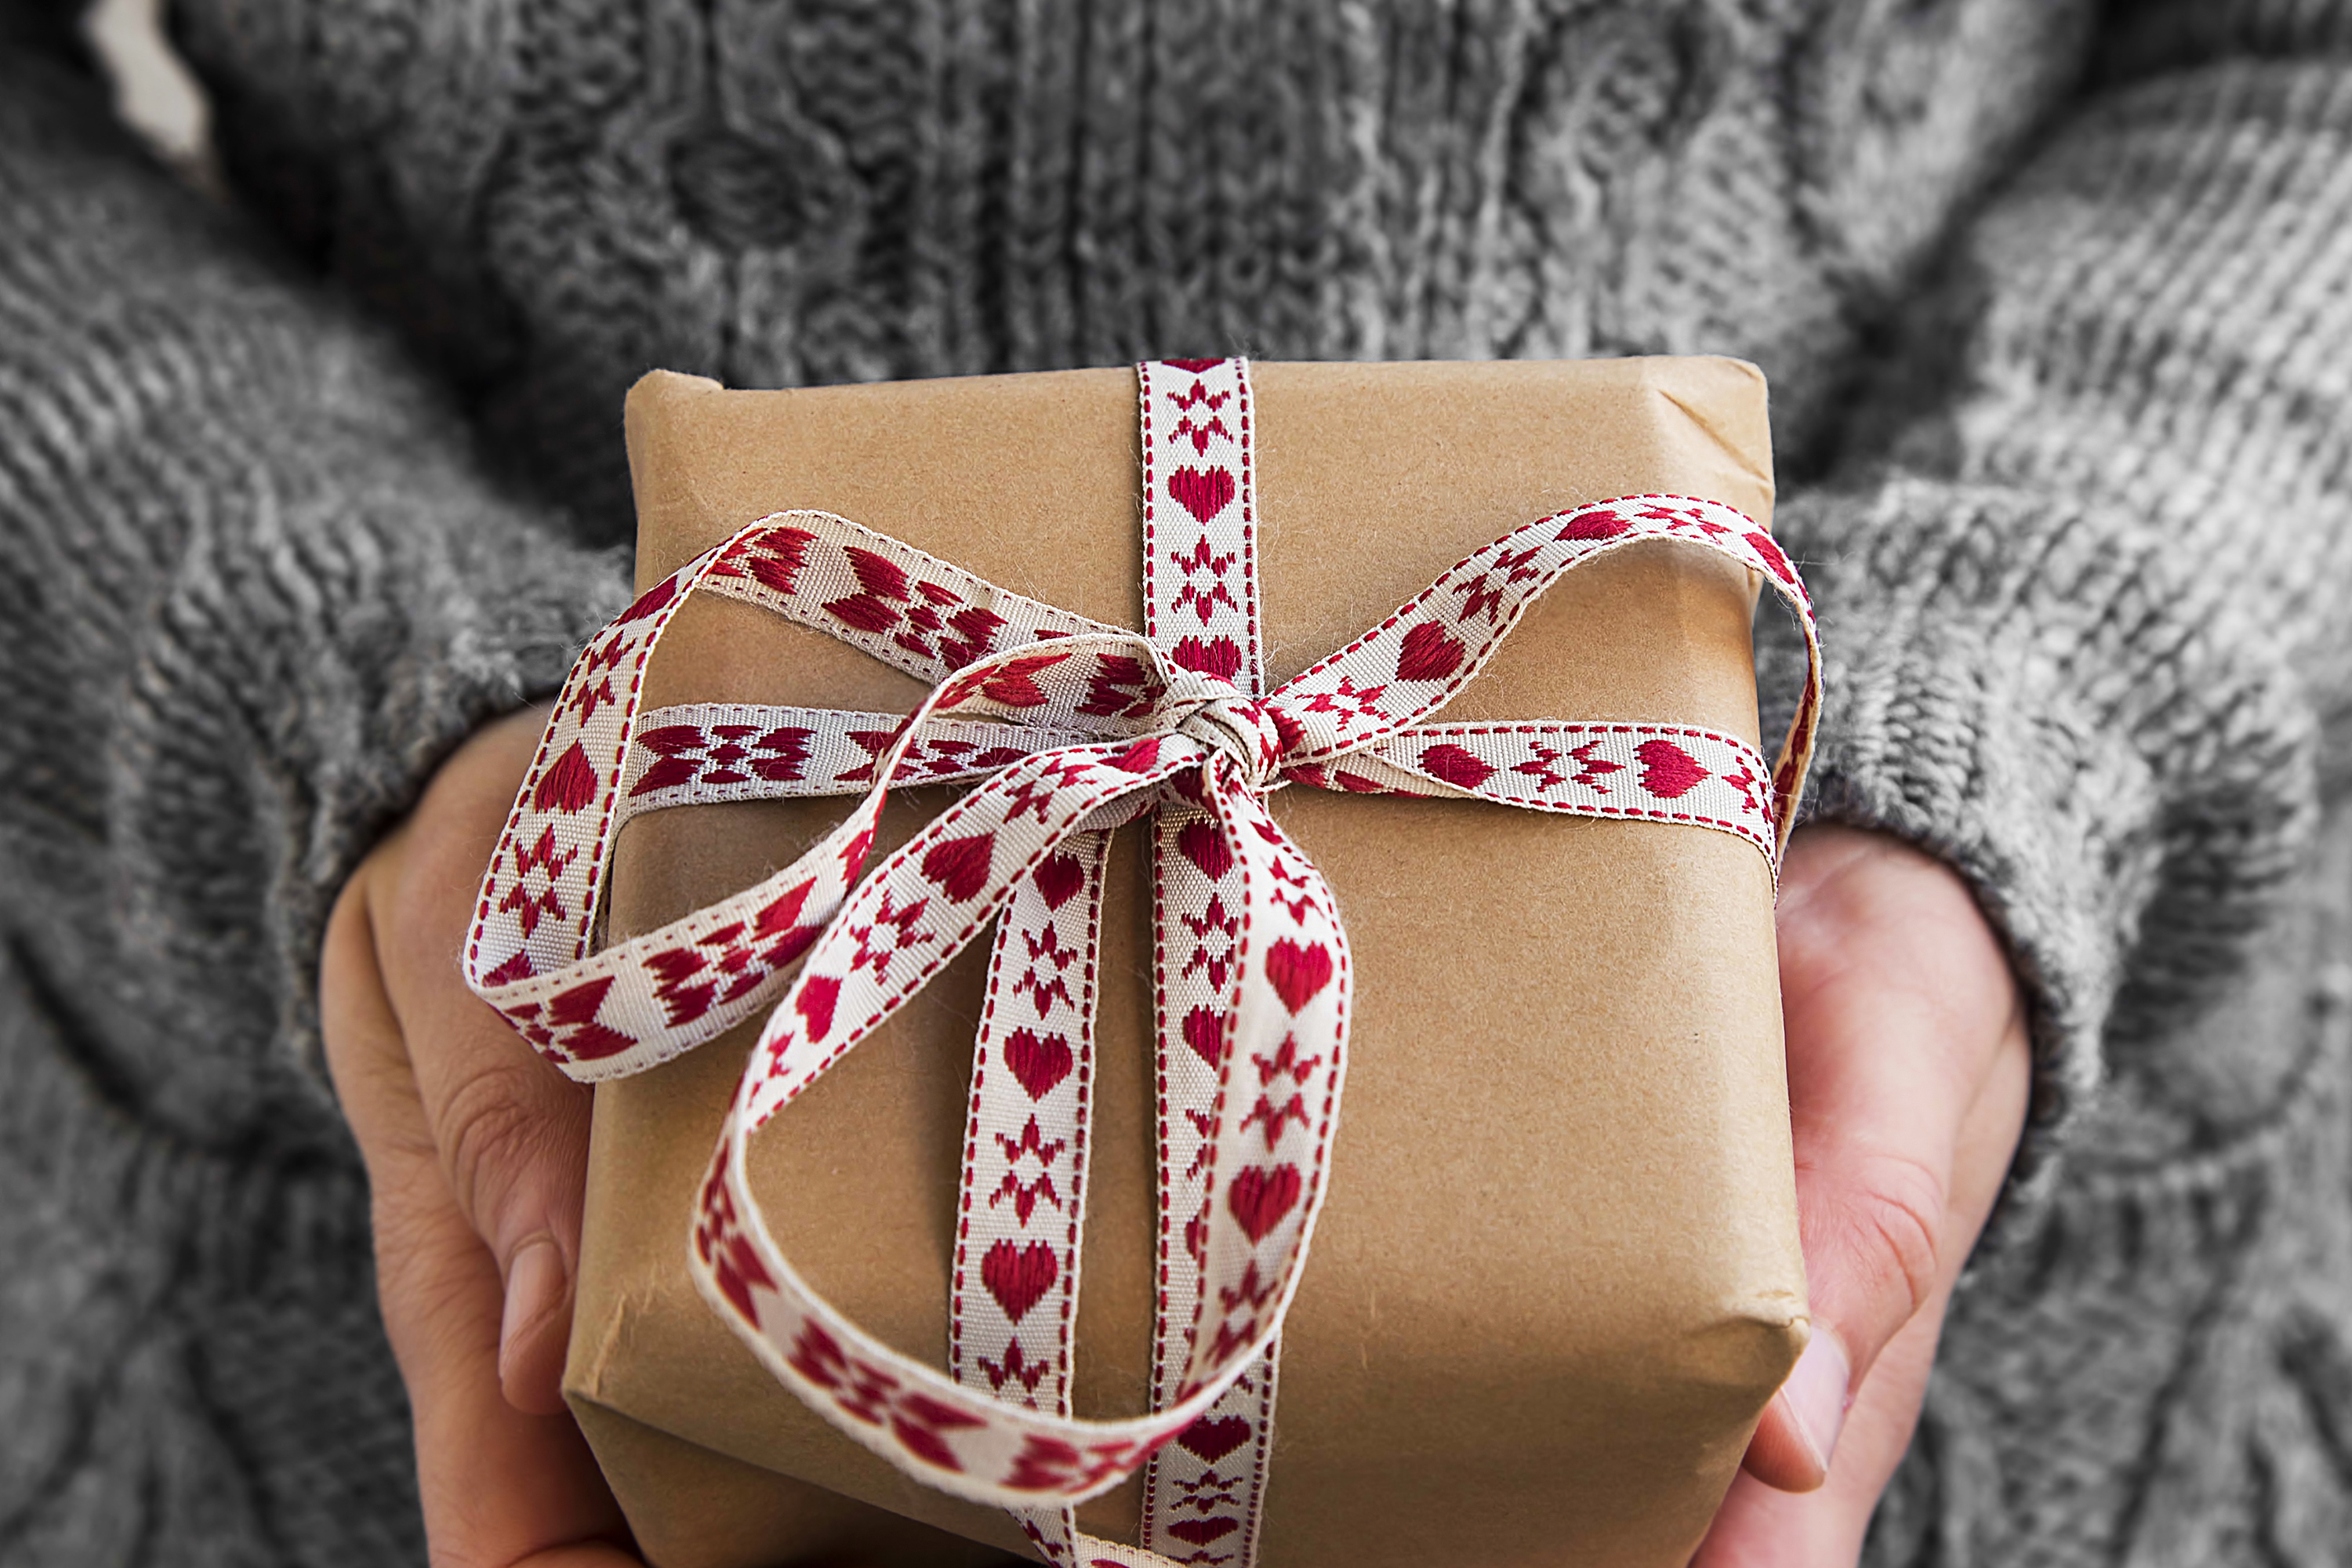 It can be hard trying to come up with the perfect Christmas gifts. Lucky for you, I have Christmas gift ideas that will work for everyone in your life.